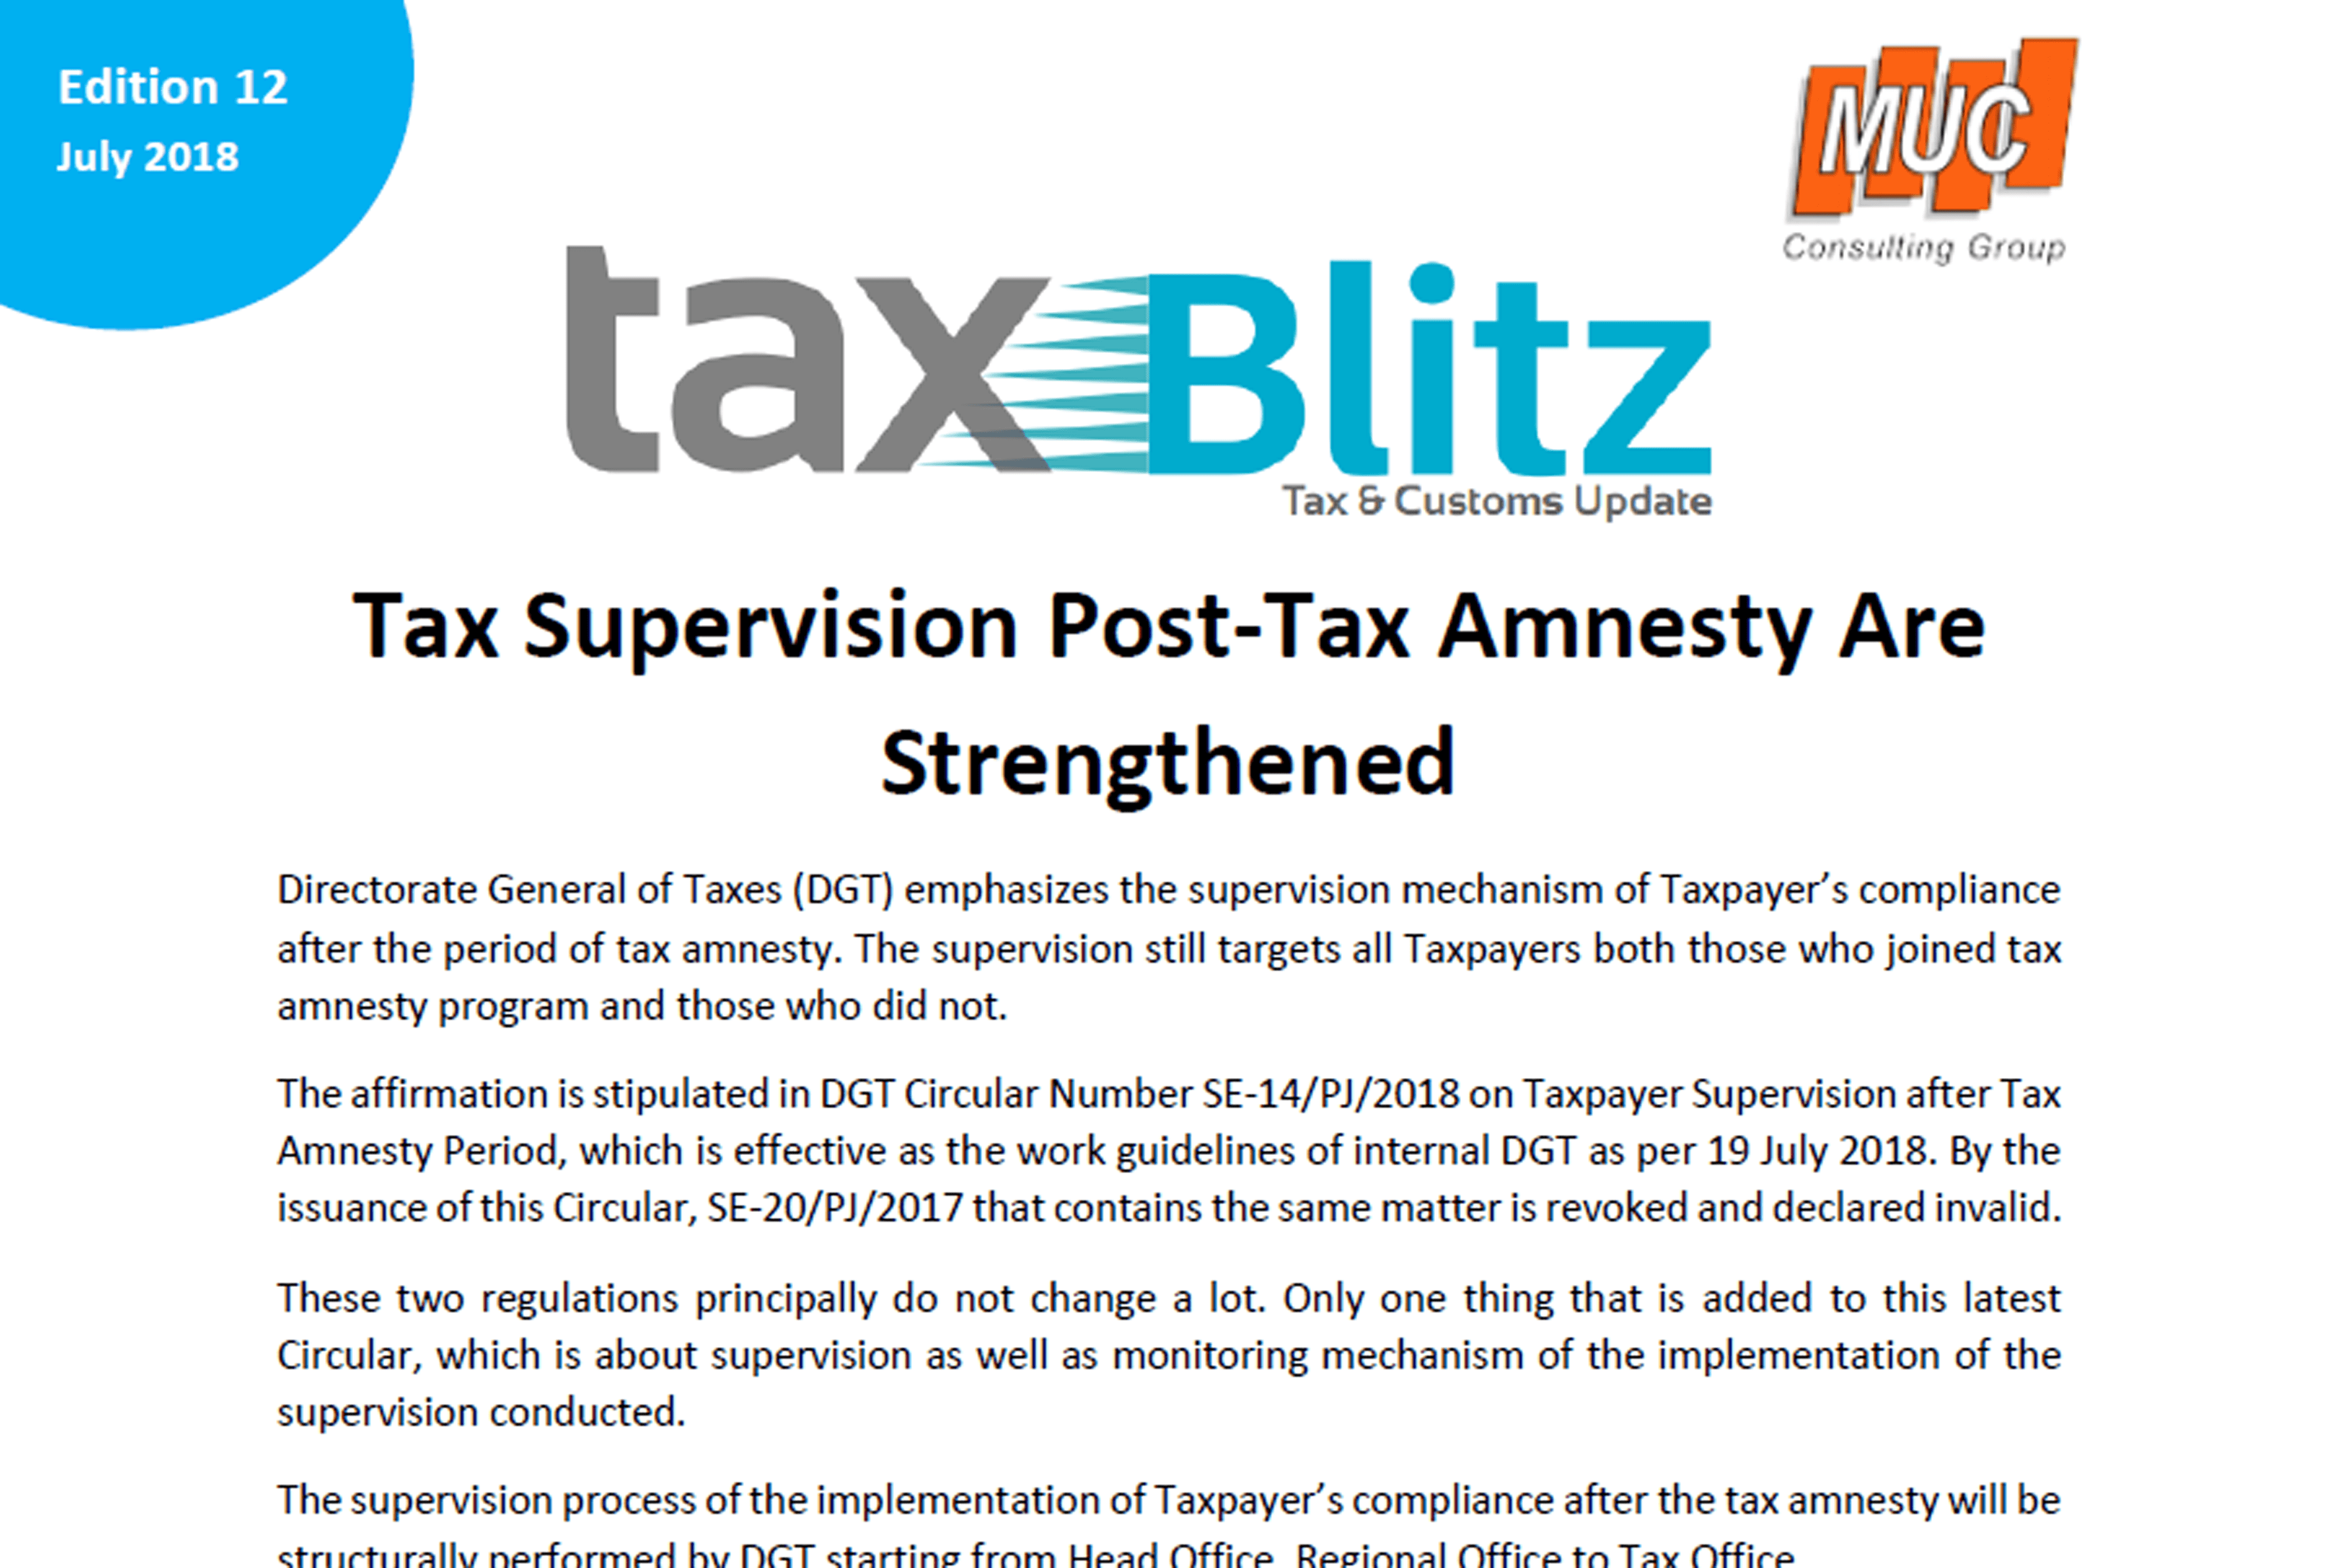 Tax Supervision Post-Tax Amnesty Are Strengthened